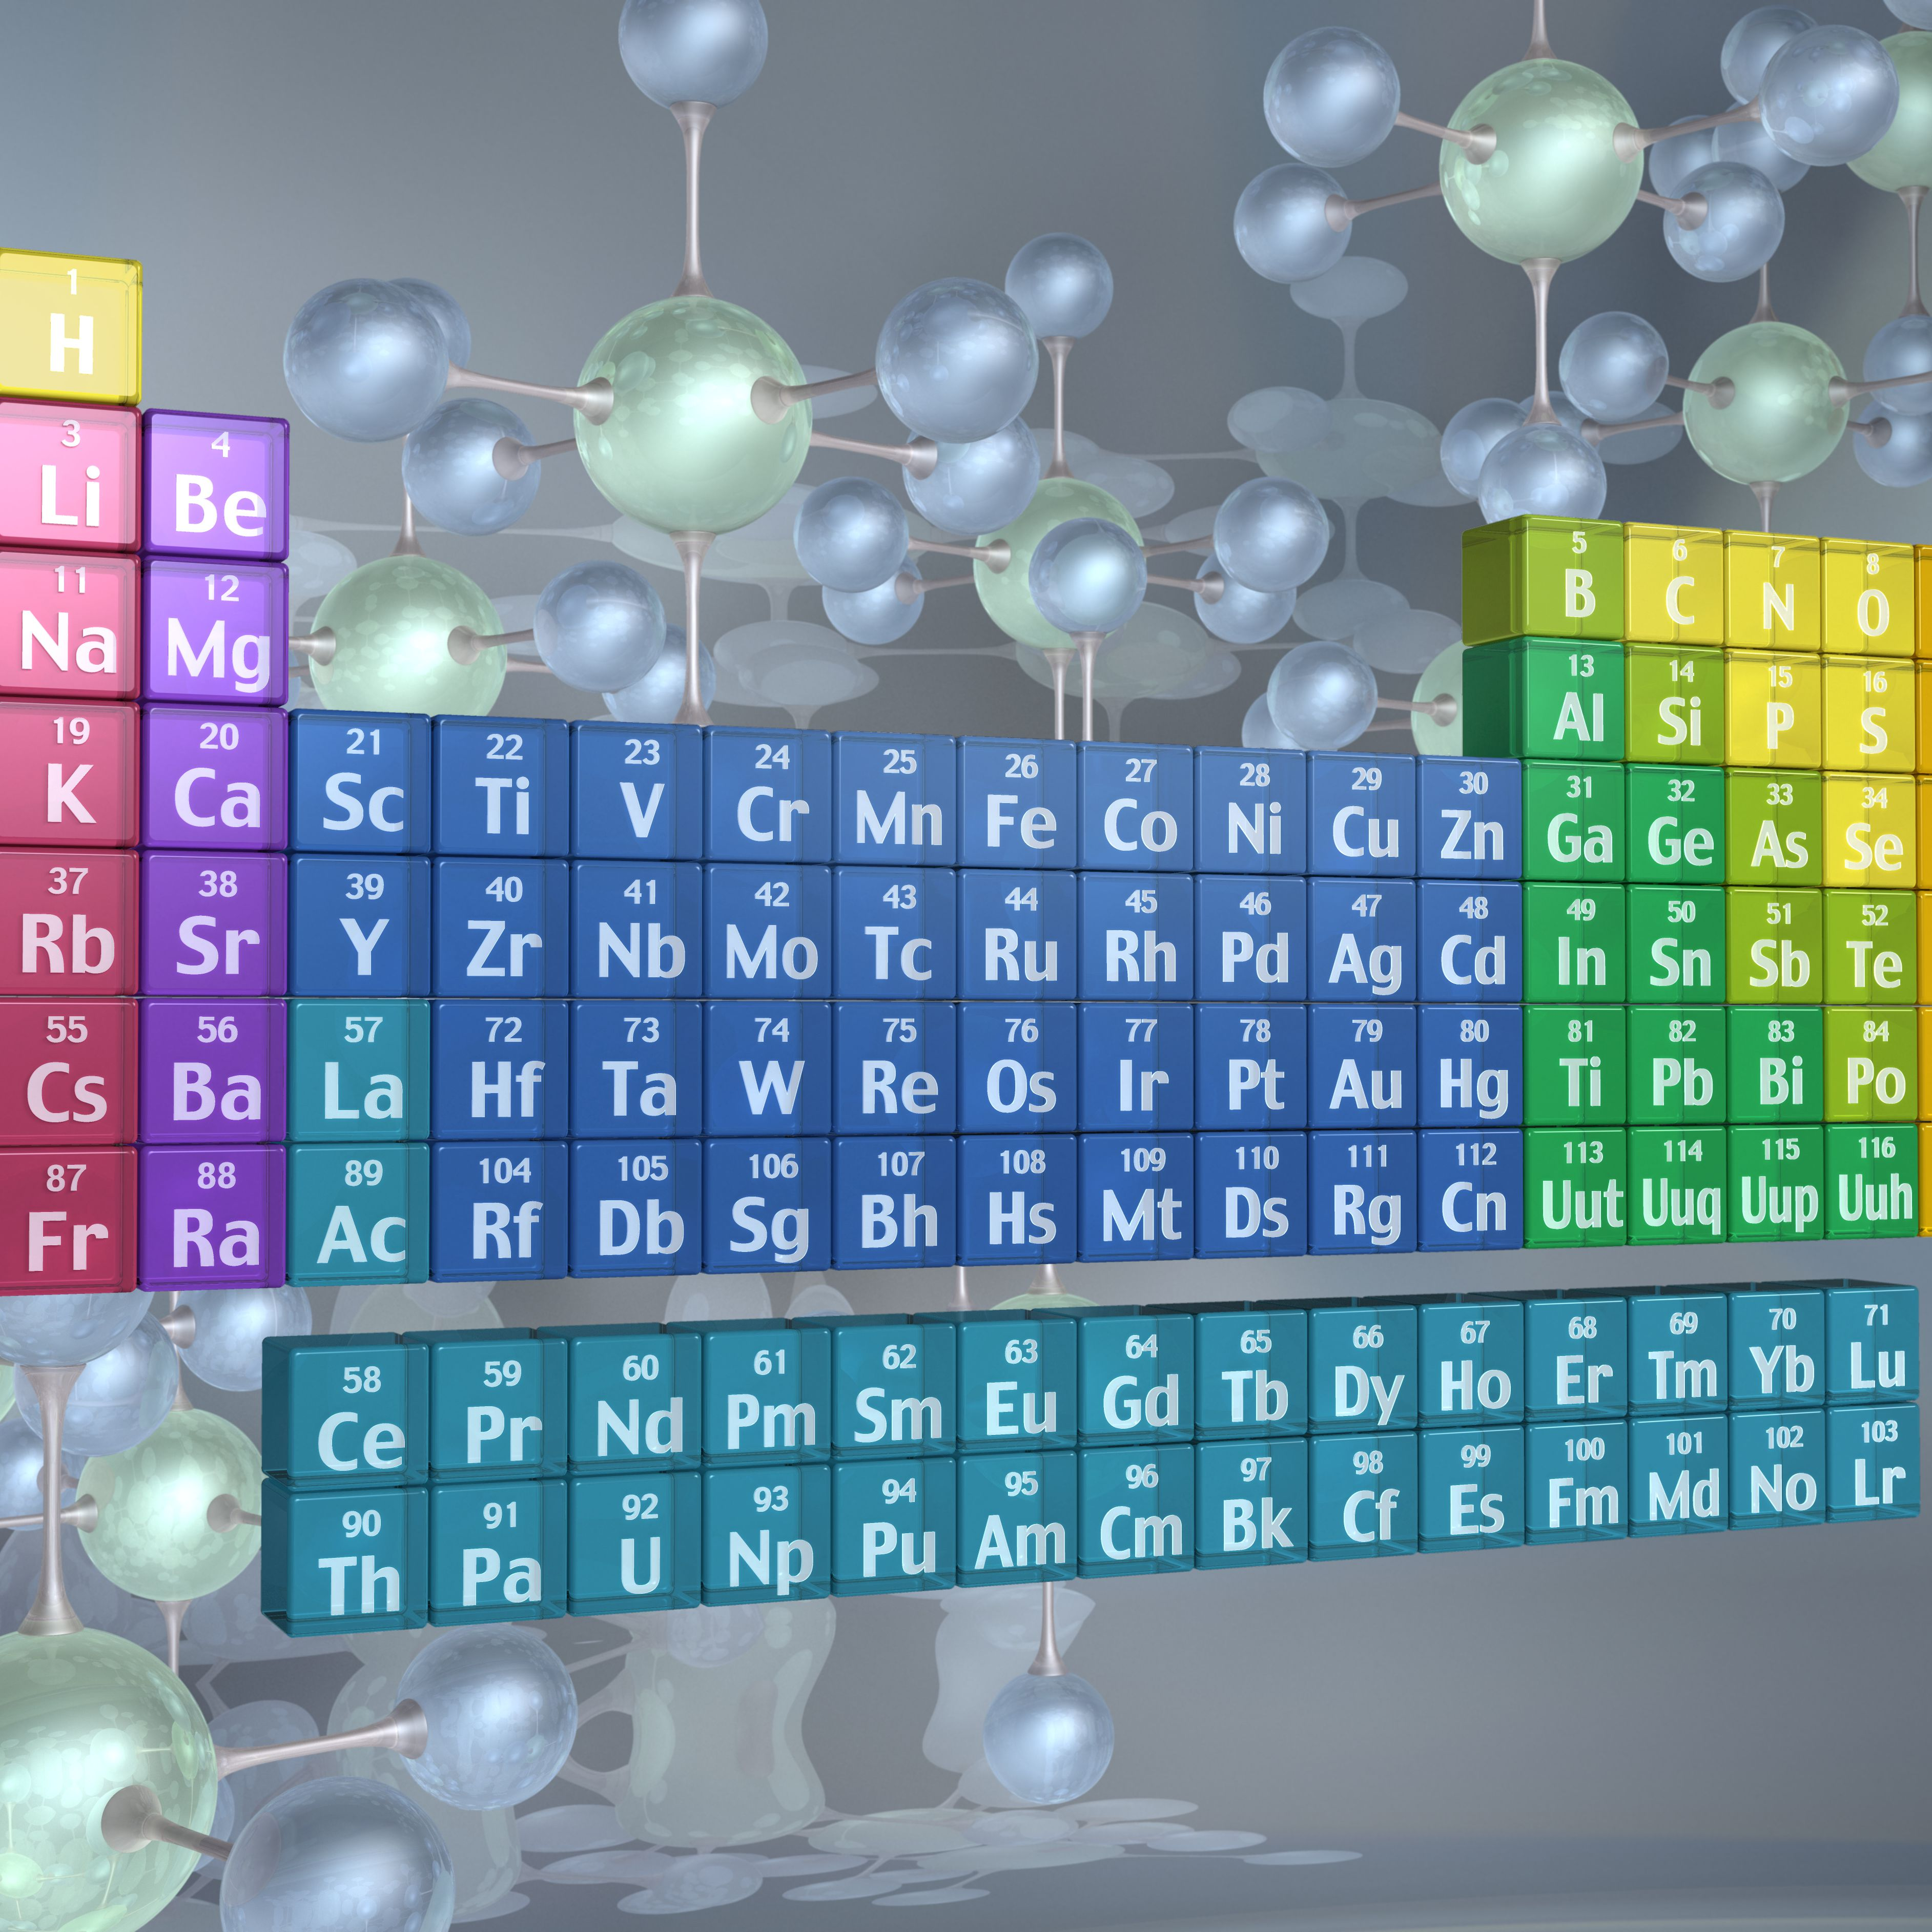 Which Group In The Periodic Table Contains Only Nonmetals